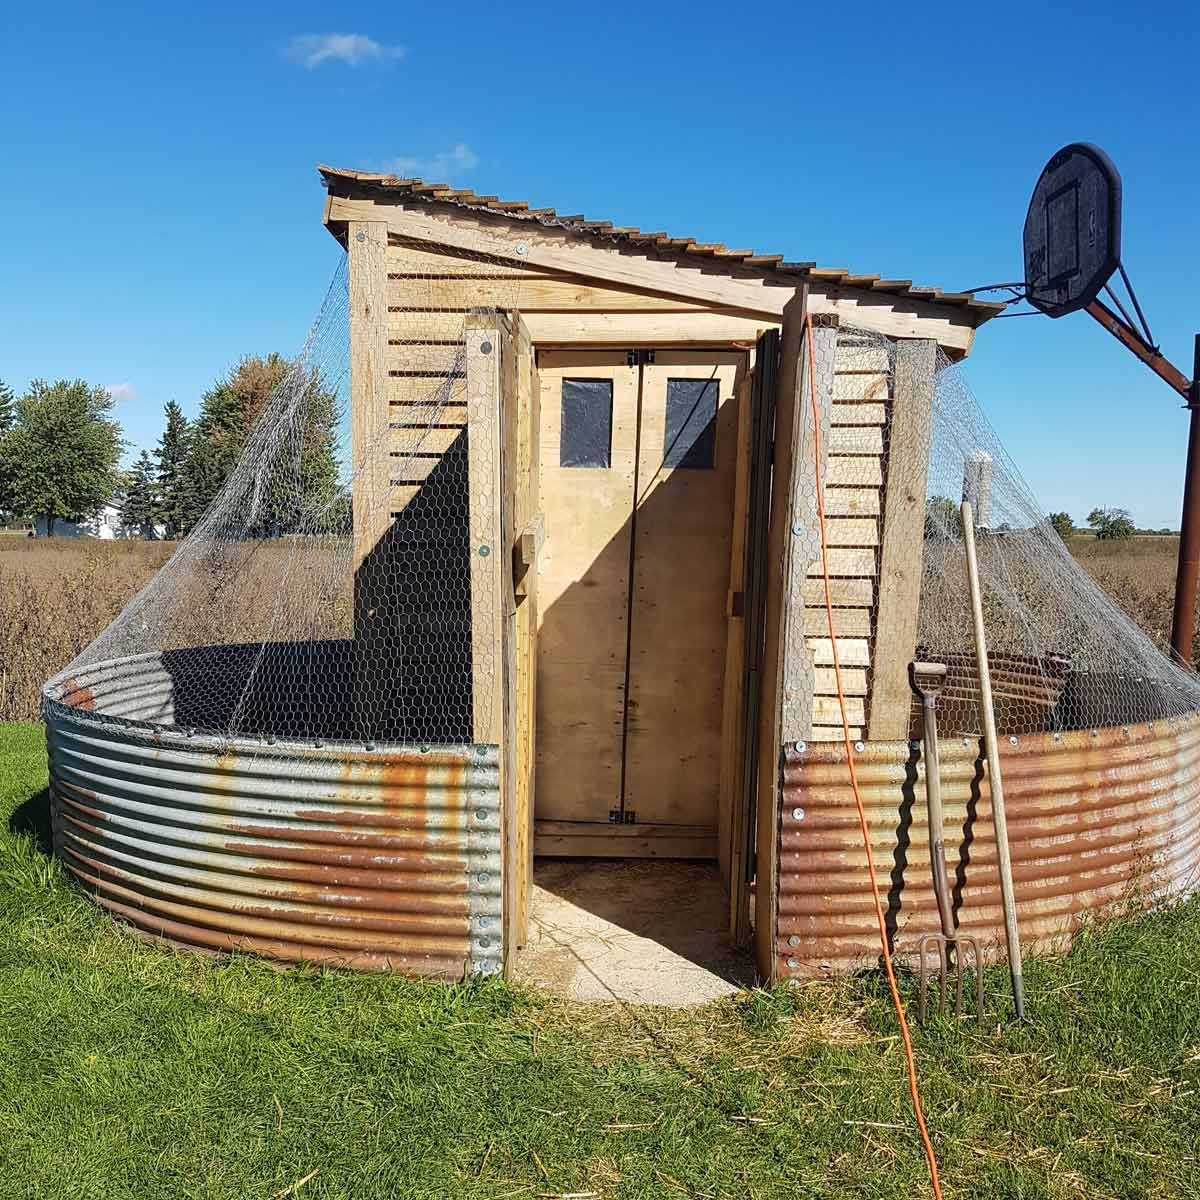 Wonderful Diy Recycled Chicken Coops: 14 Backyard Chicken Coops